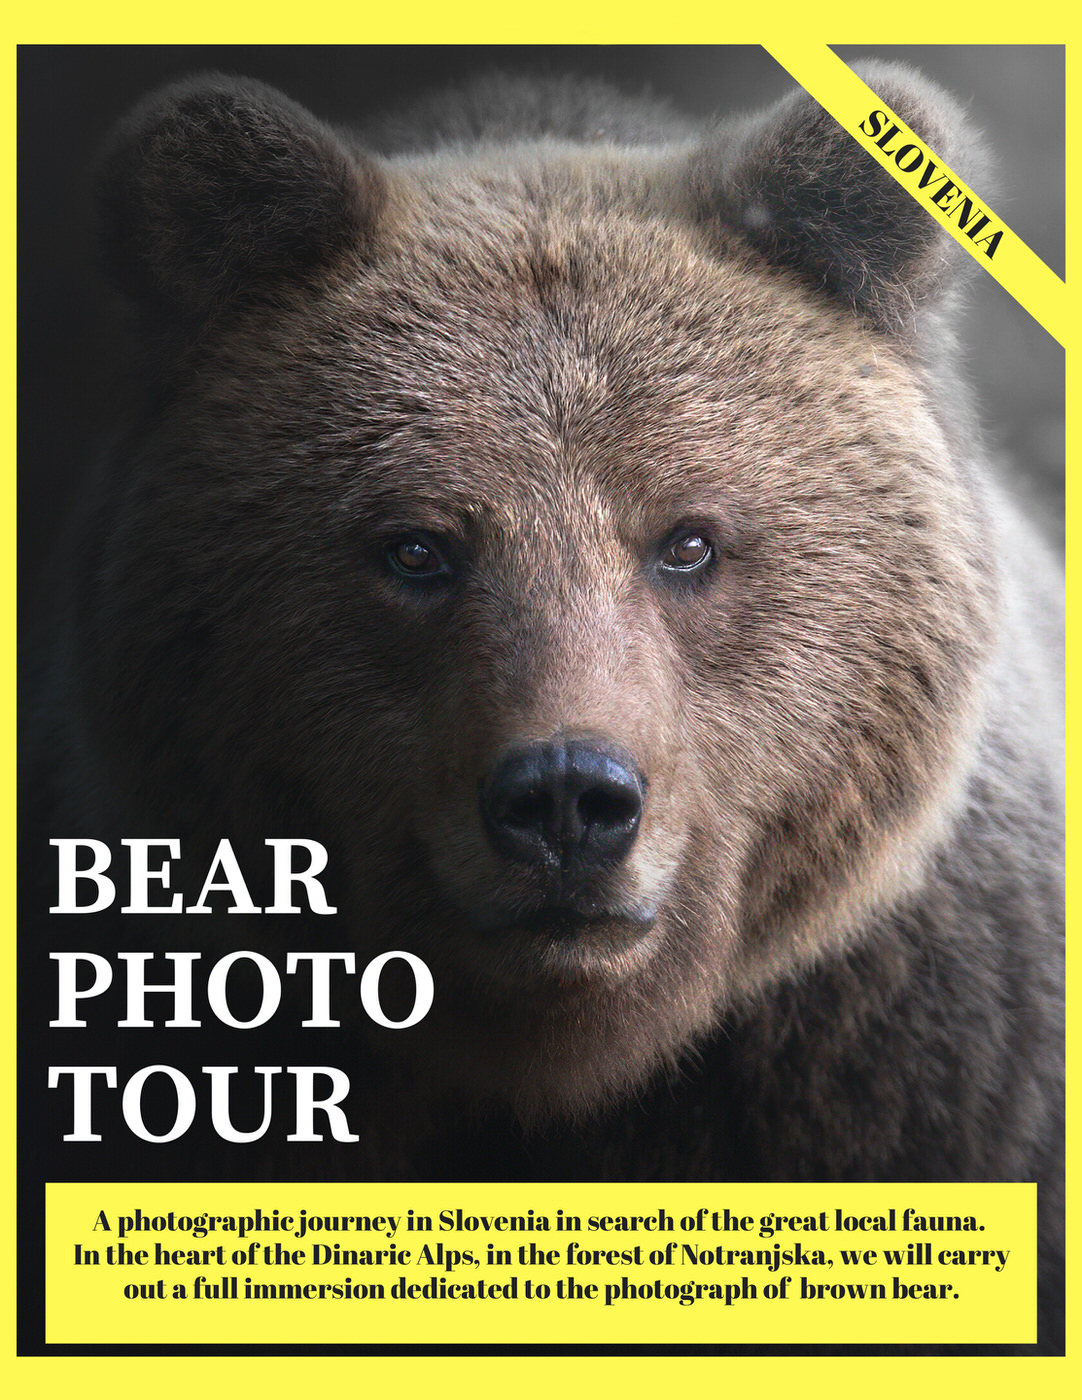 bear photo tour michele bavassano wildlife photography